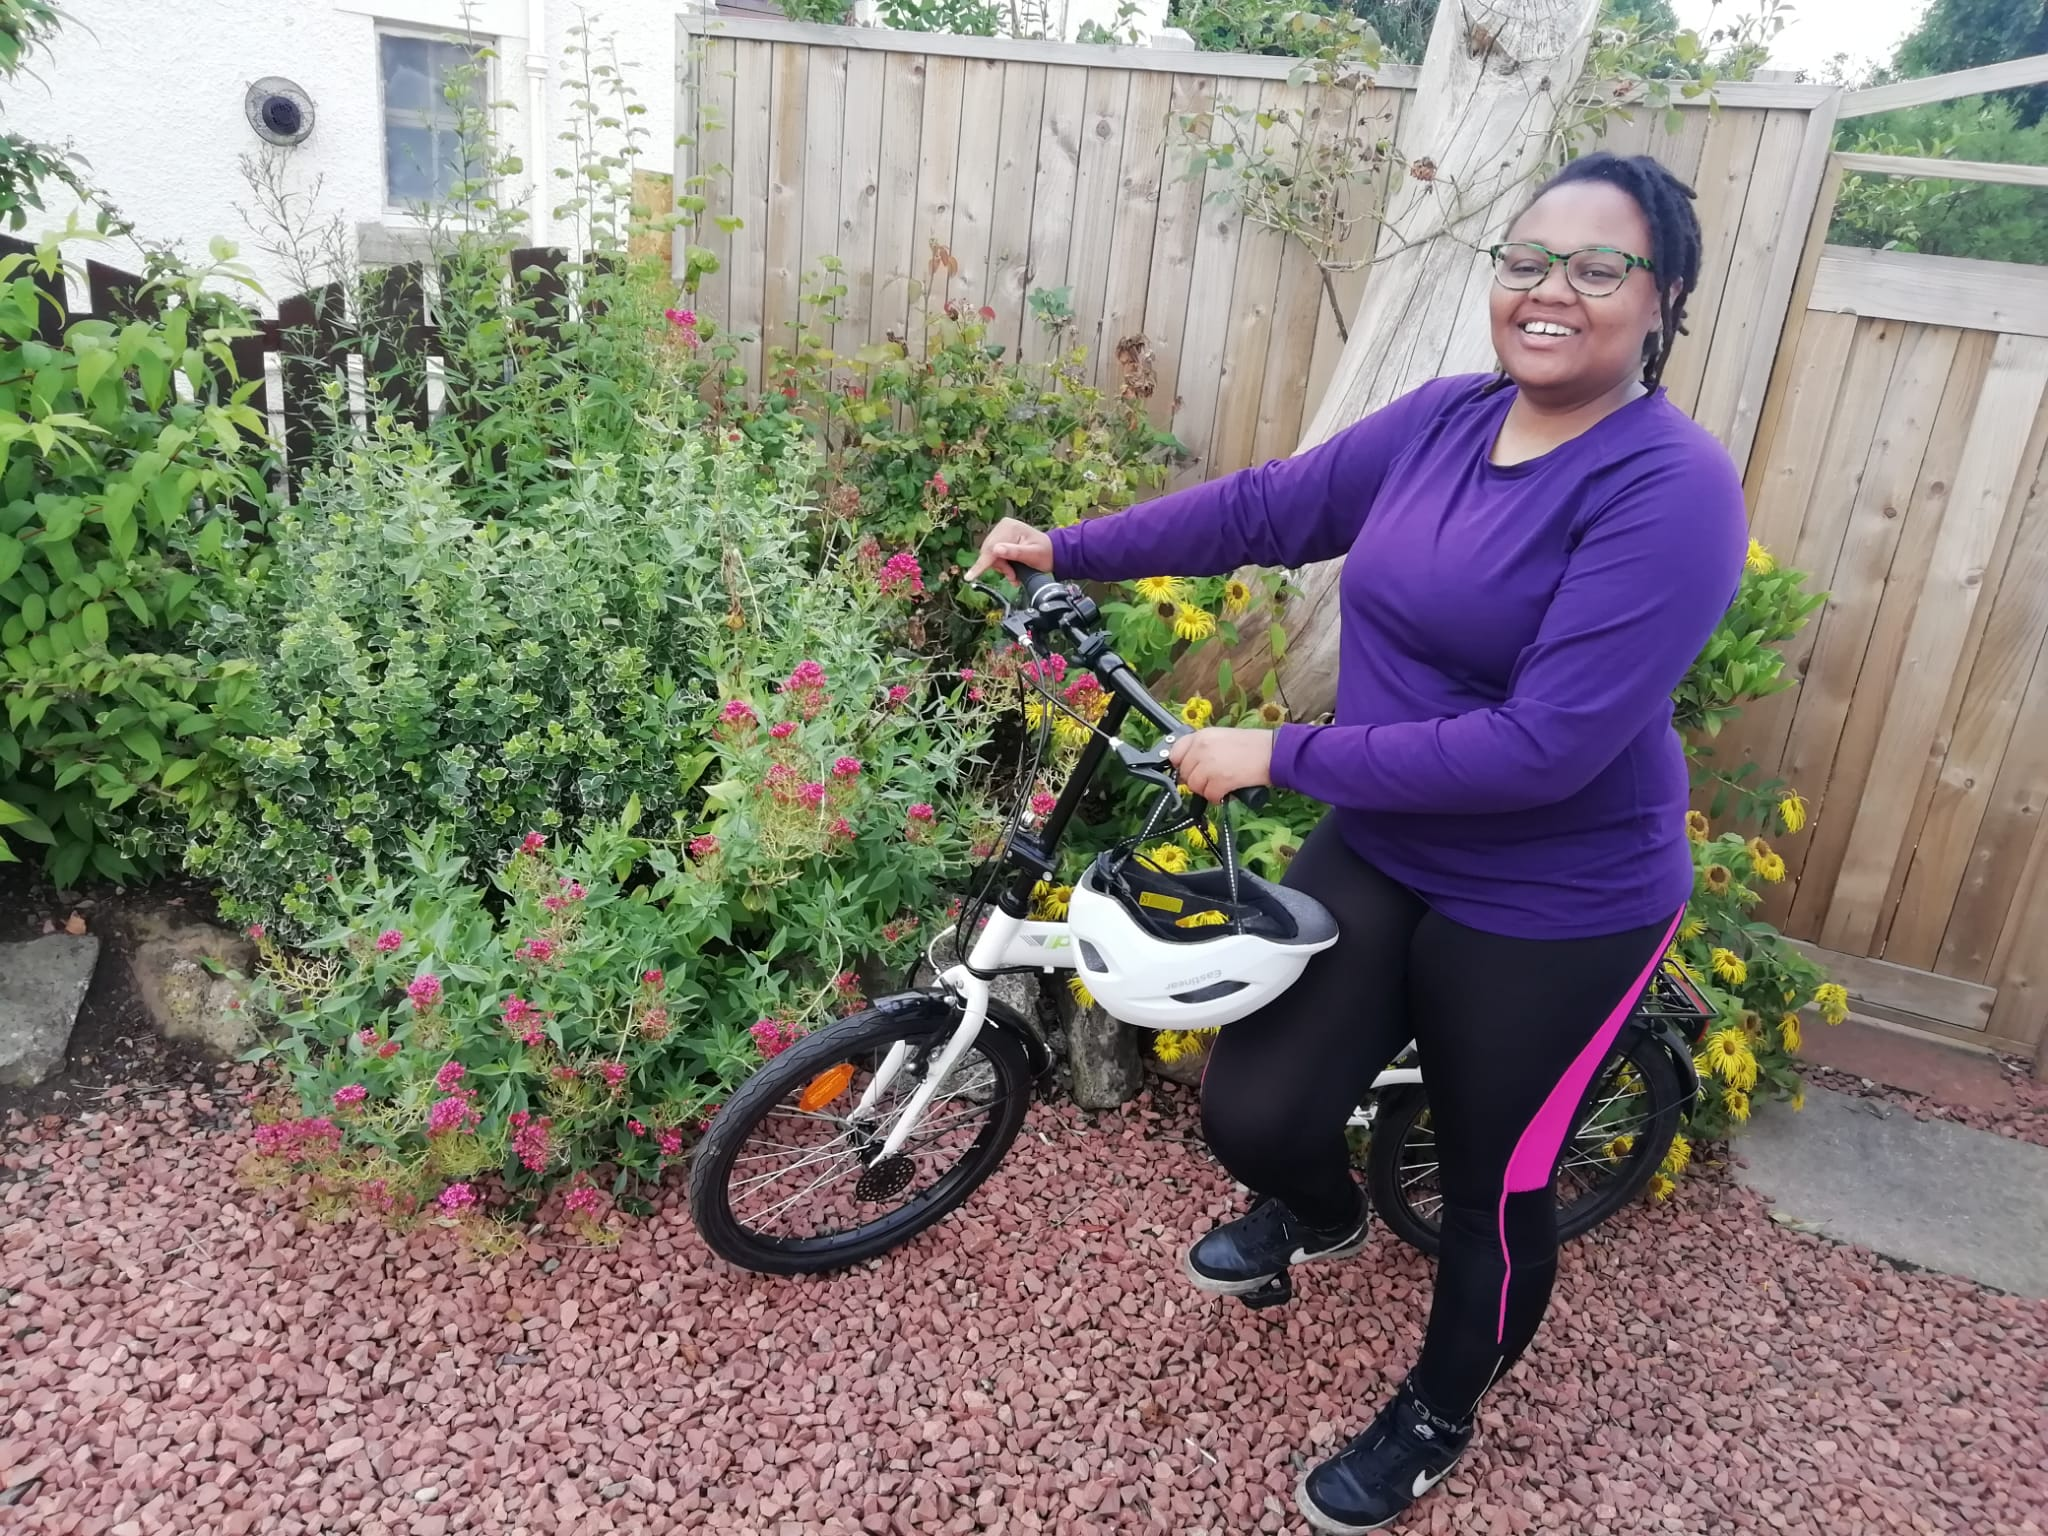 Asinath with her bike